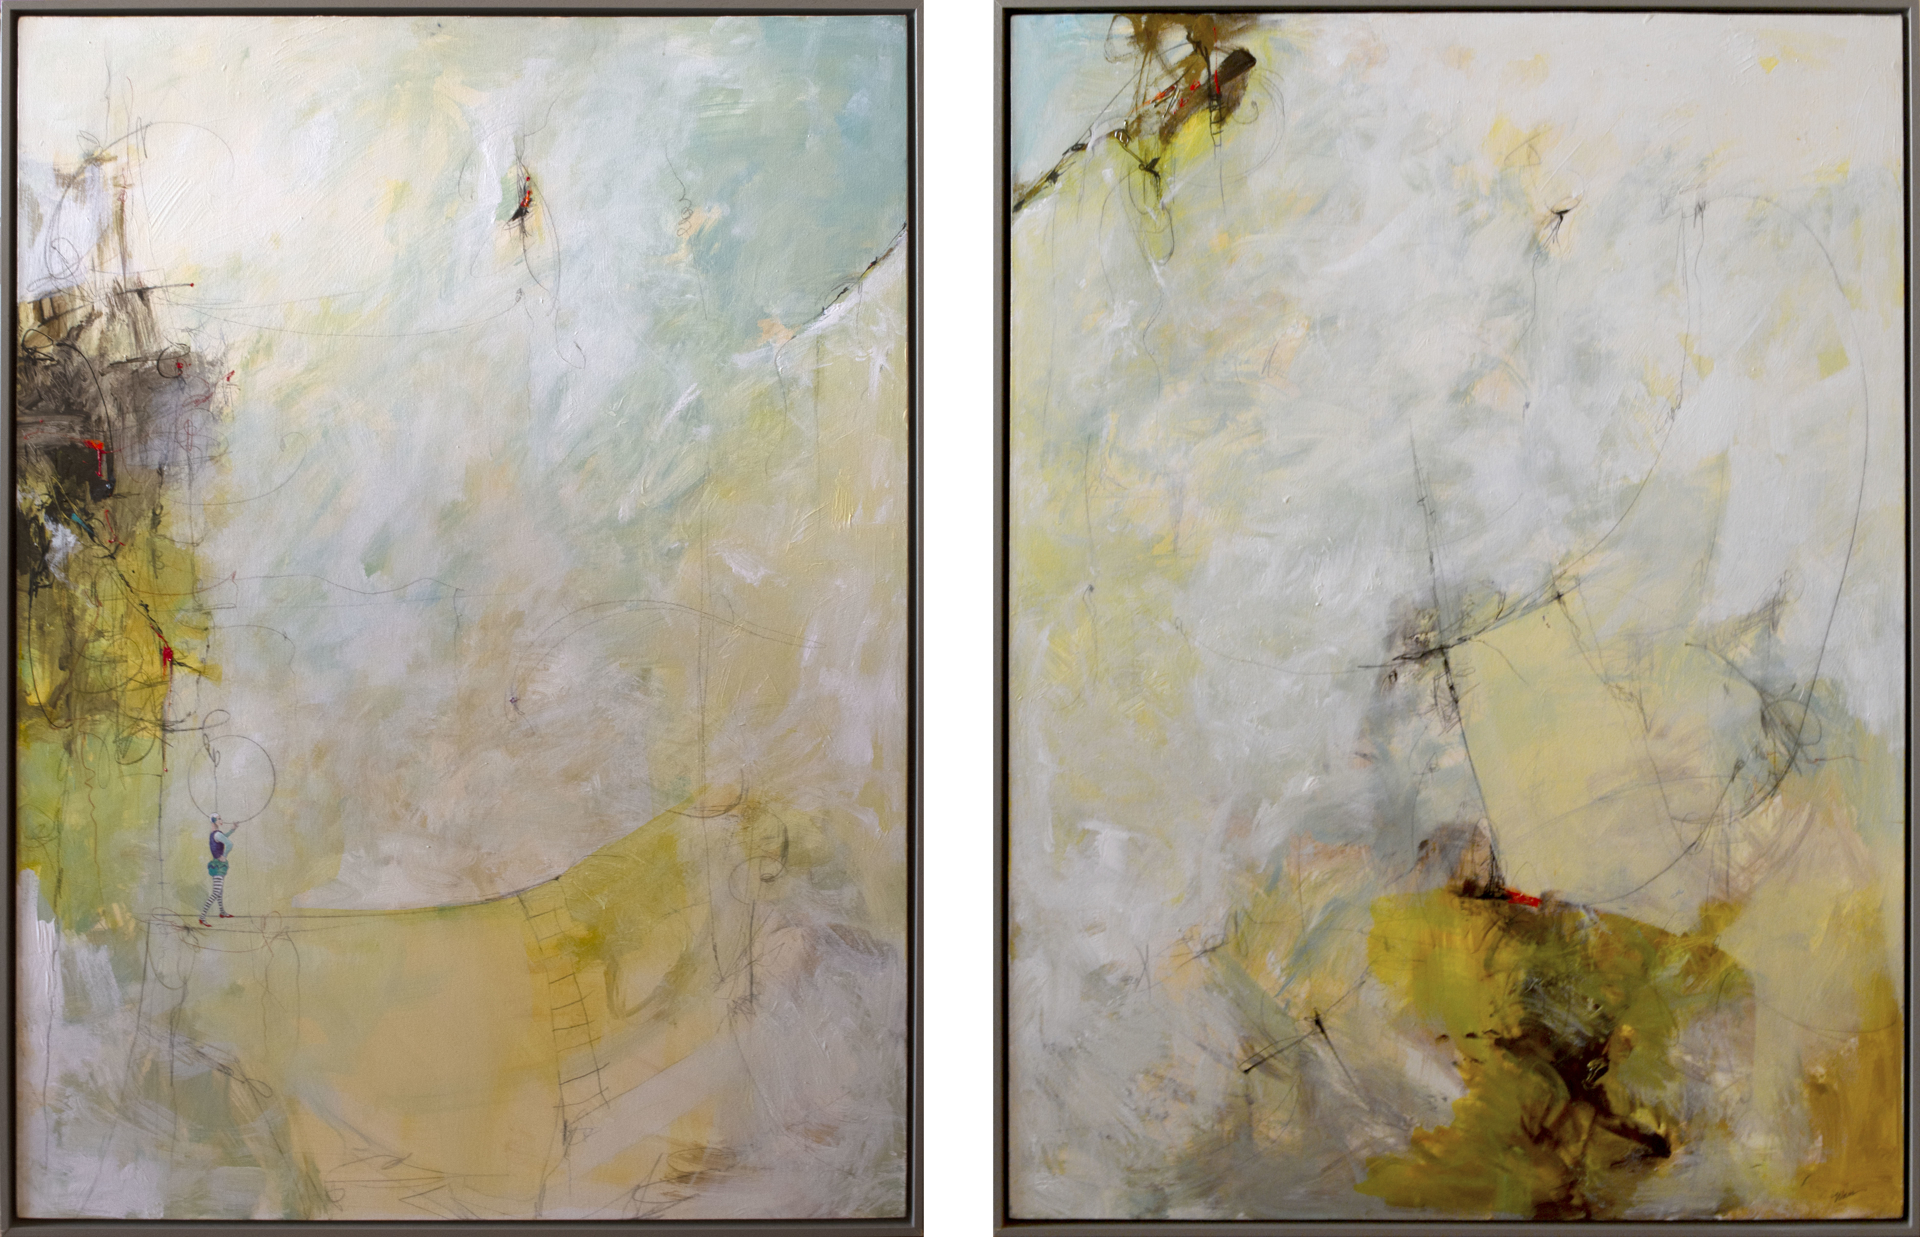 Wonderland (Diptych) by Wan Marsh